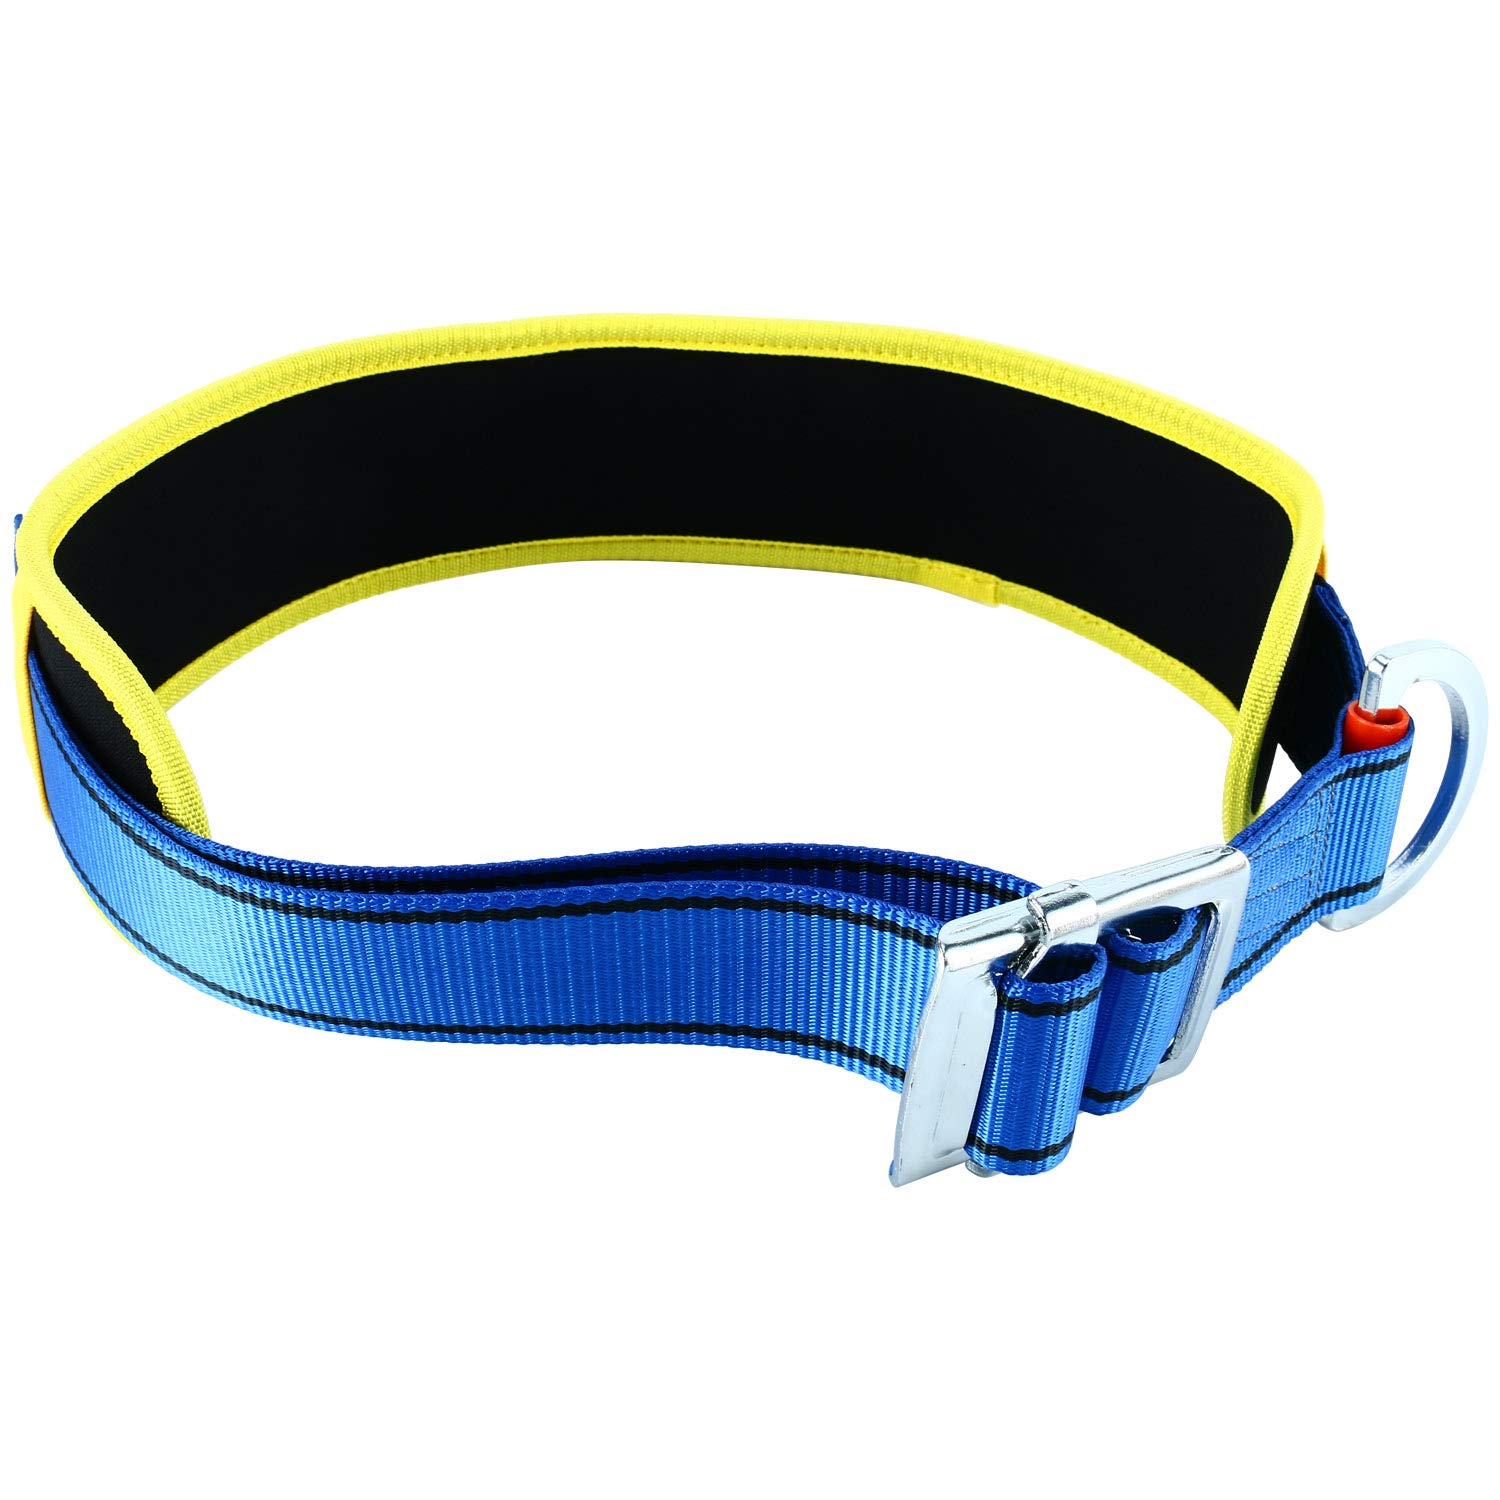 YaeCCC Body Belt with Hip Pad and Side D-Ring, Fall Arrest Safety Harness by YaeCCC